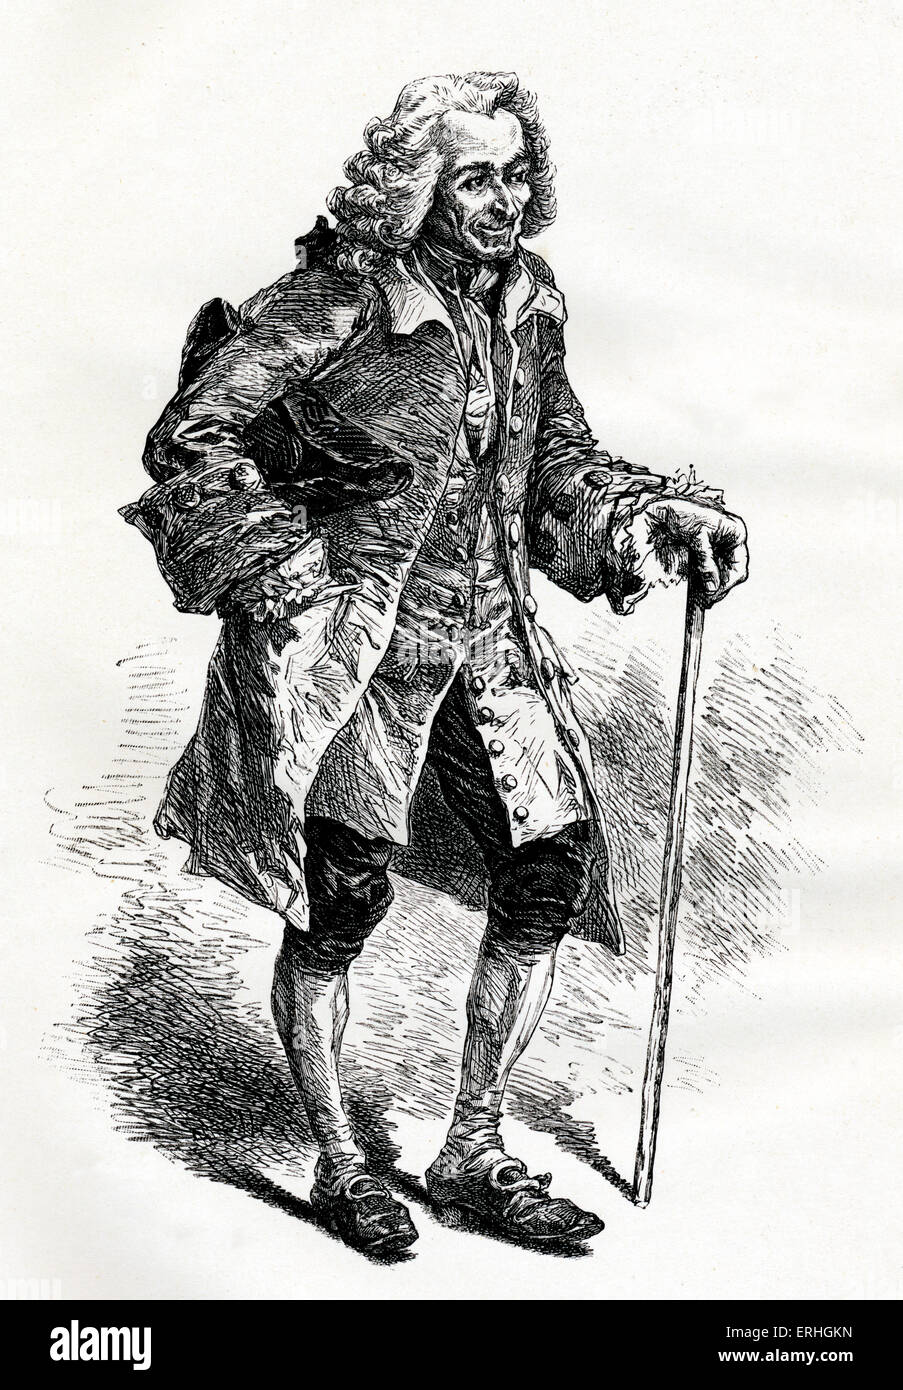 Francois-Marie Arouet / Voltaire - portrait of the French writer and philosopher as an old man with a walking stick. 21 November 1694 - 30 May 1778. Stock Photo